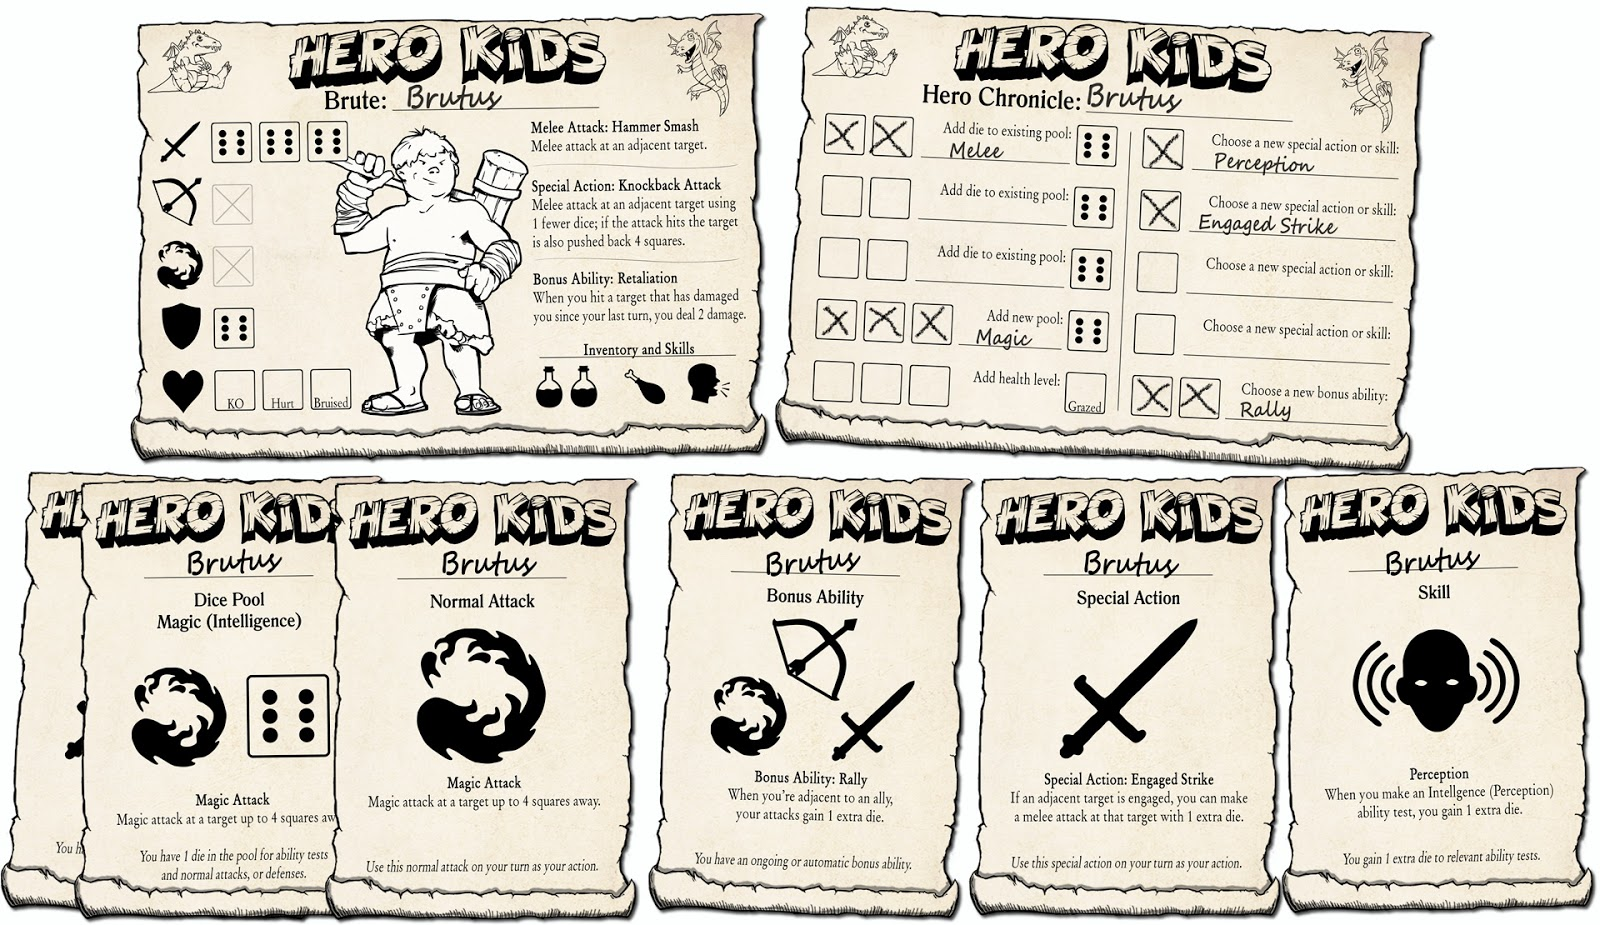 Hero Kids character advancement card spread